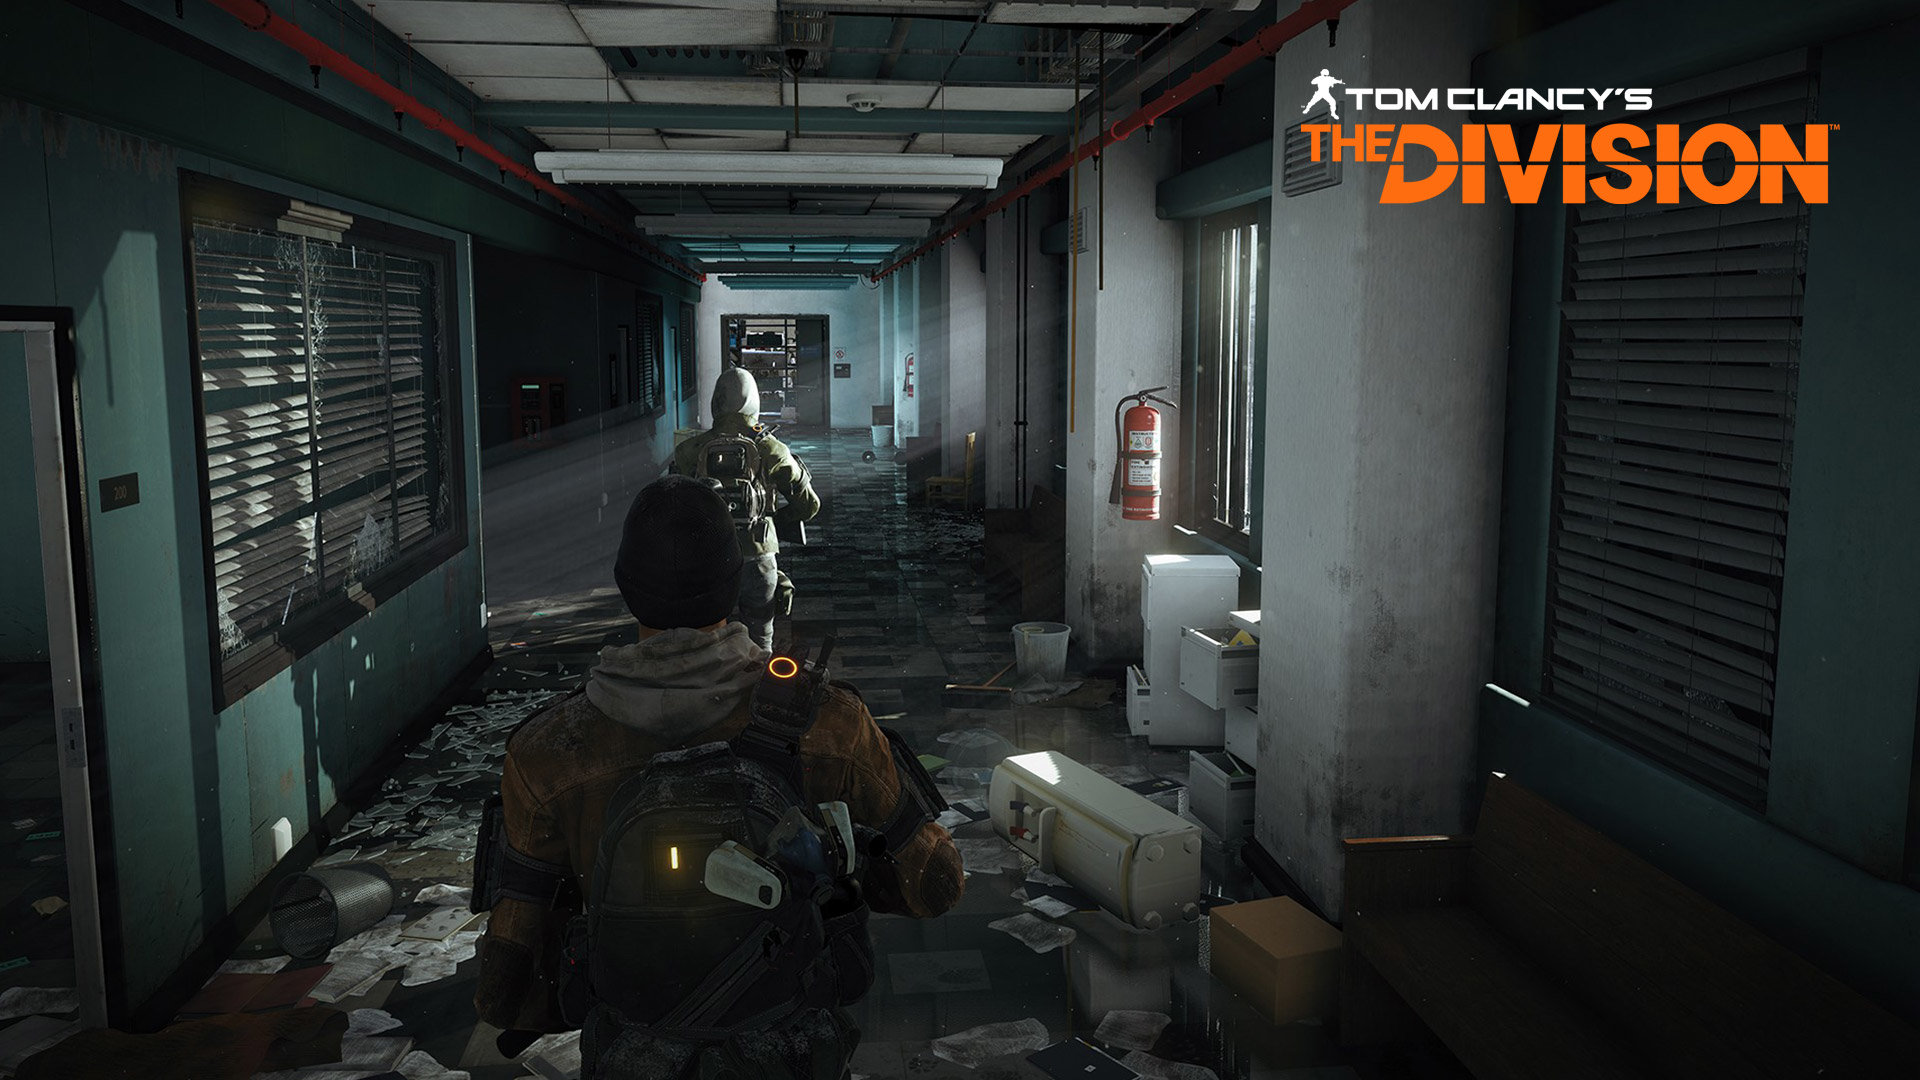 Awesome Tom Clancys The Division Free Wallpaper Id450075